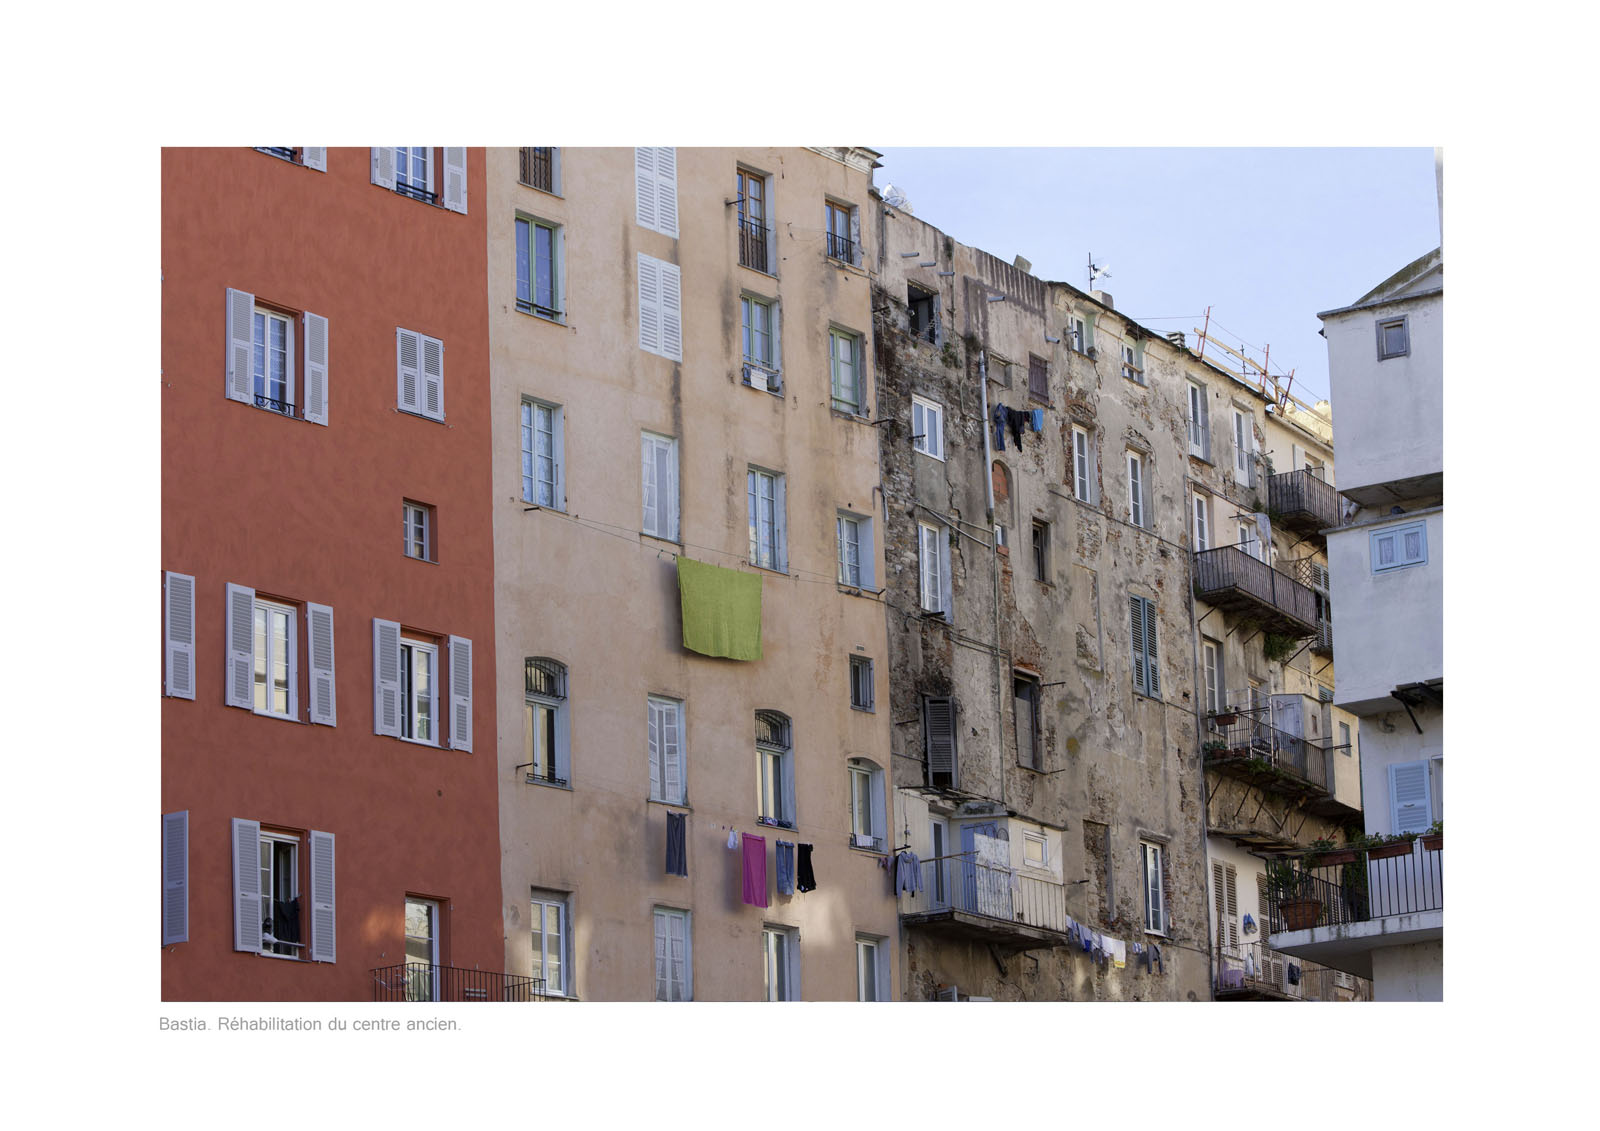 002-Norsic-Reportage-2-003